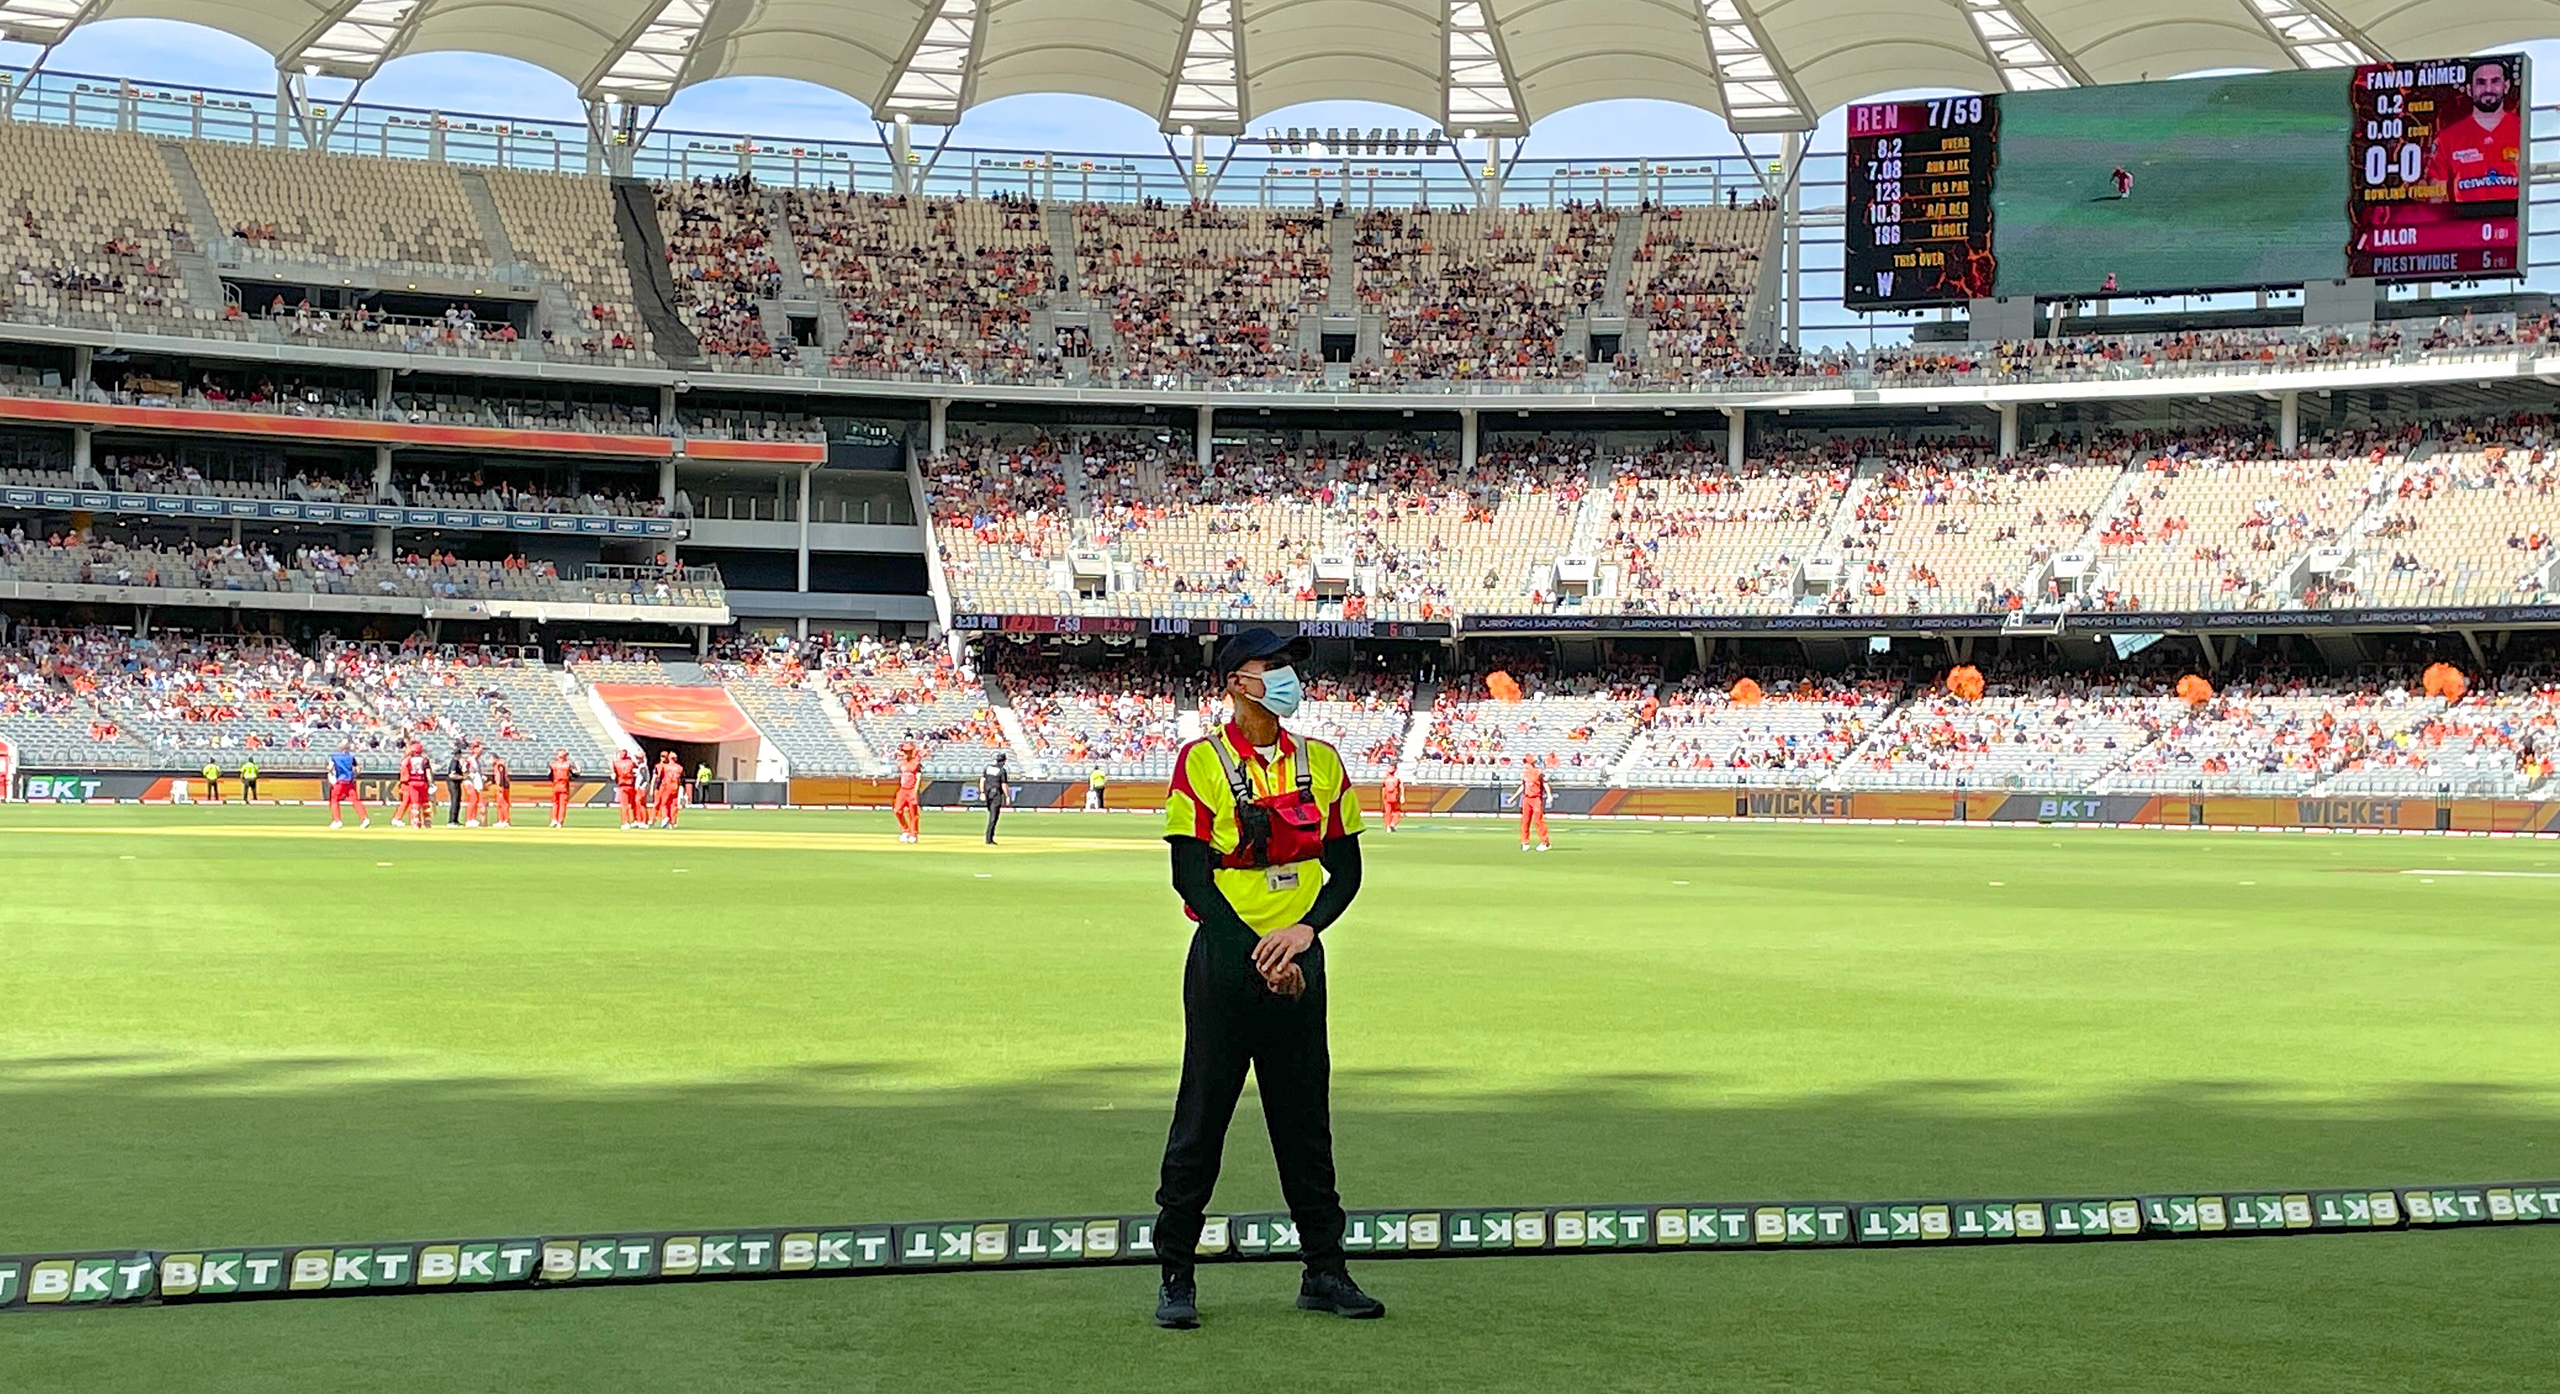 NPB Security to keep watch at some of Perth's highly anticipated events